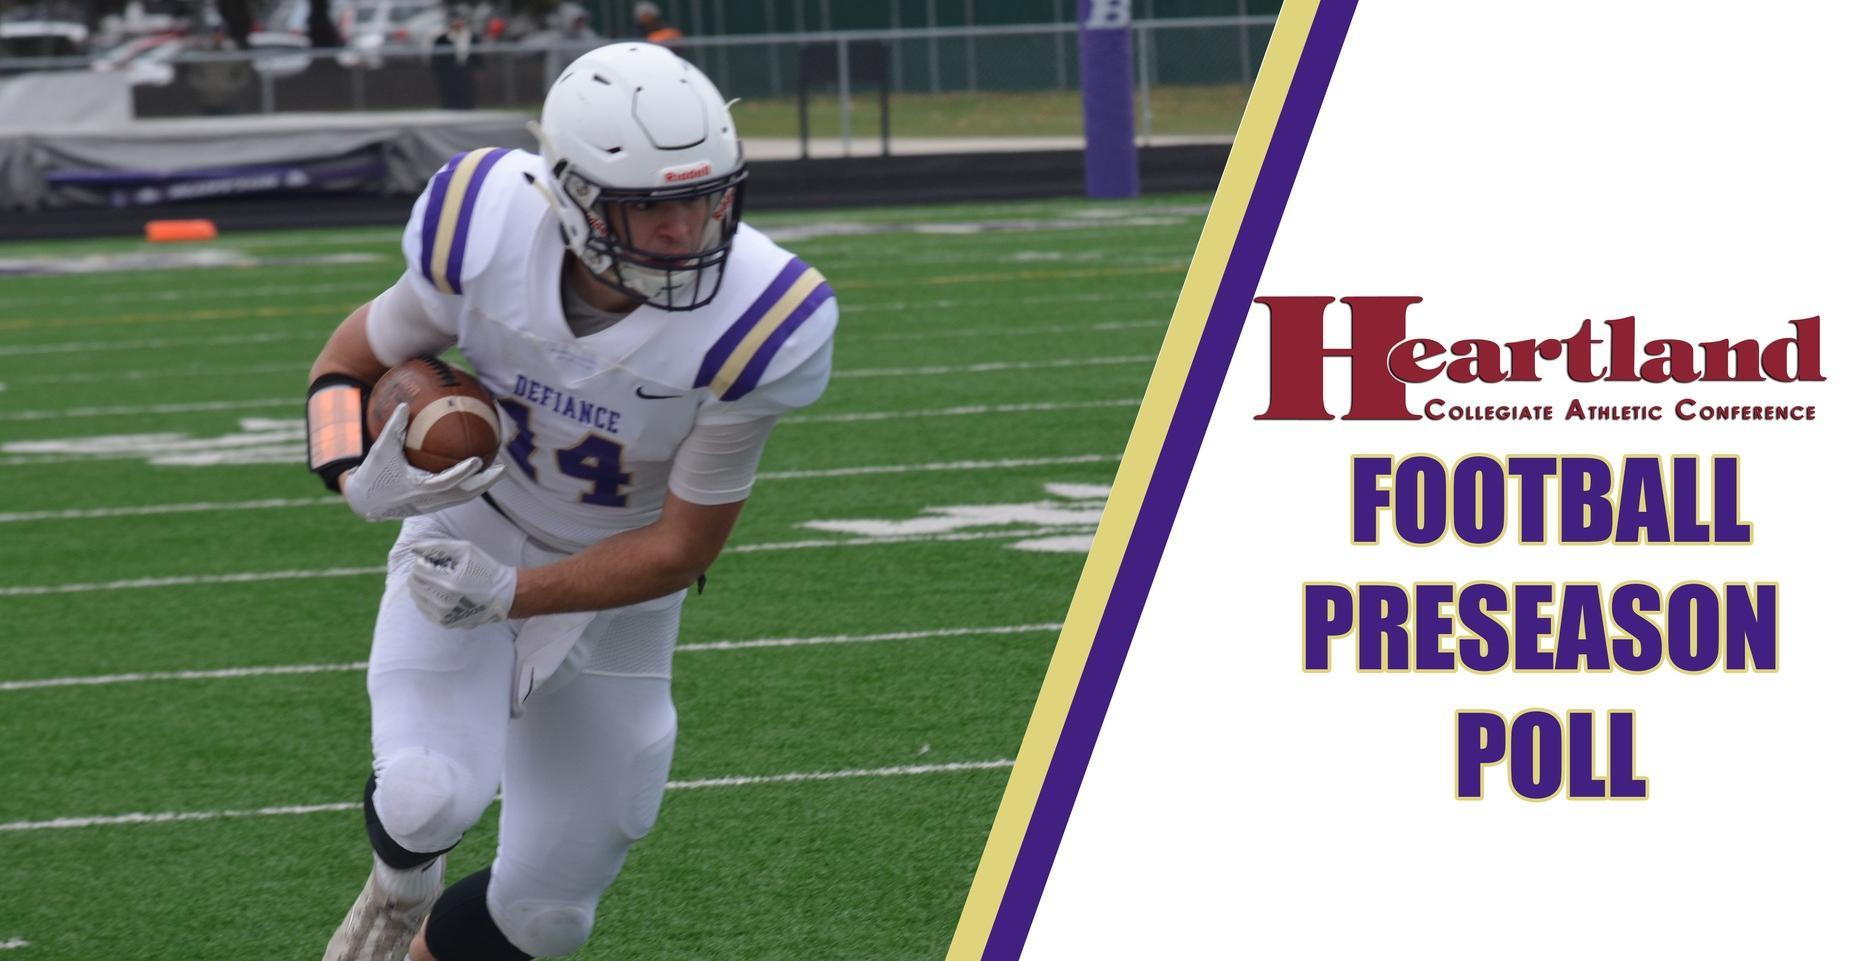 HCAC Announces Football Preseason Poll